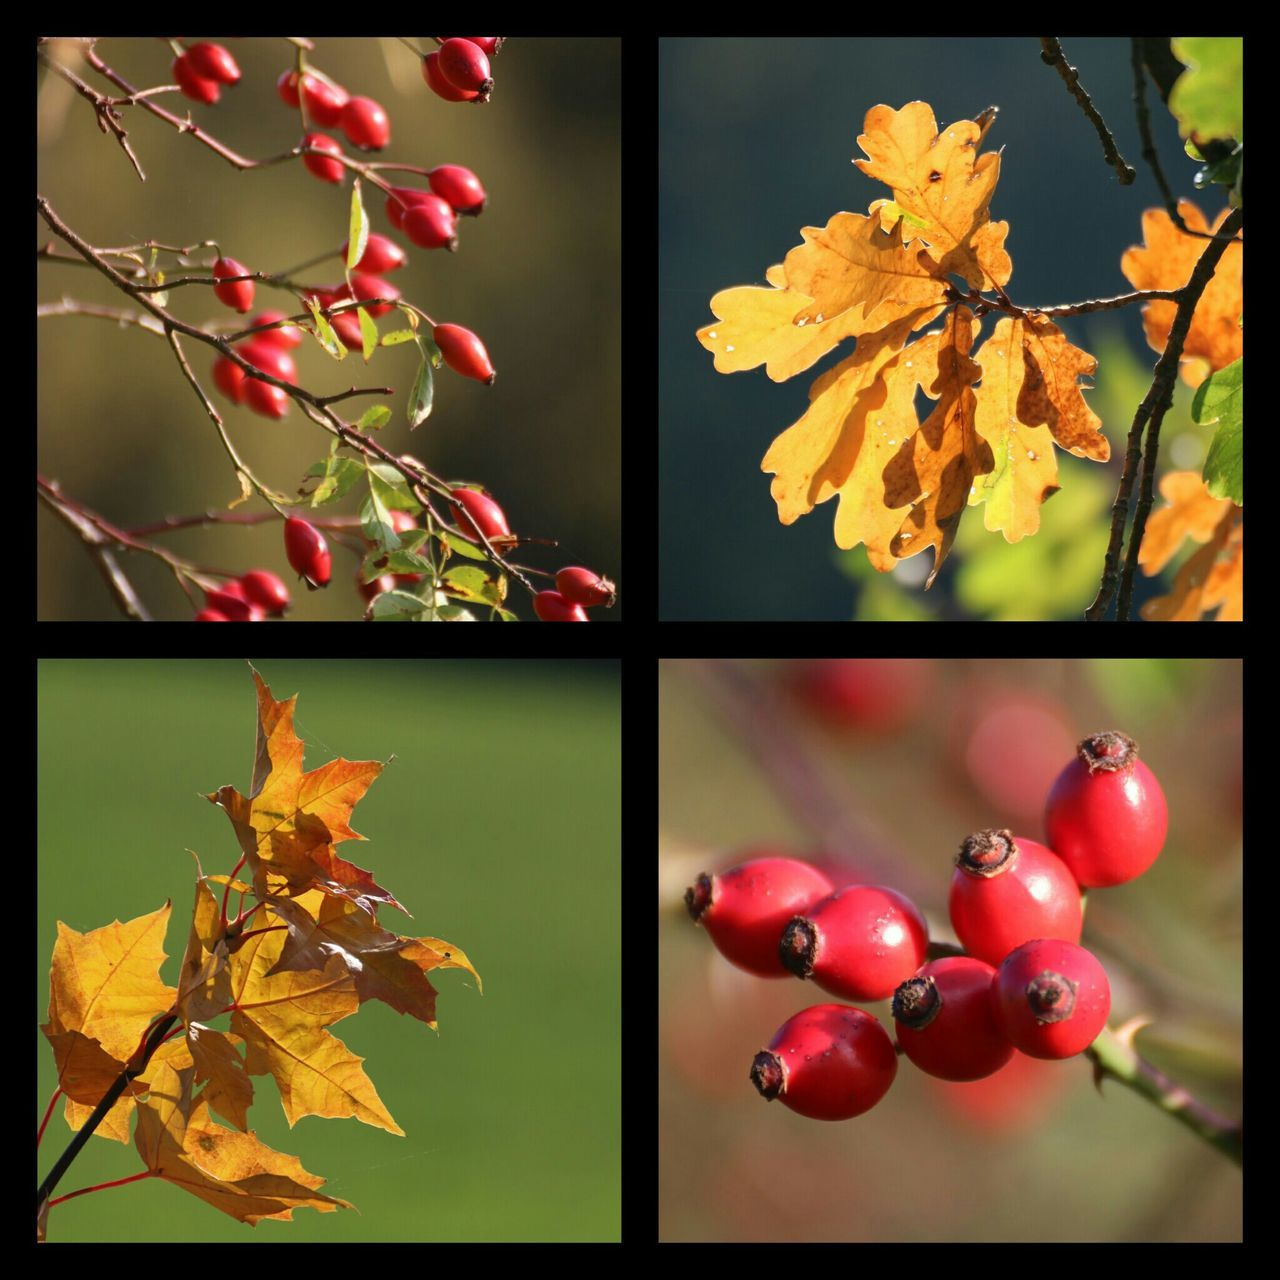 Collage Nature Close-up Autumn Beauty In Nature Change Rose Hips Colors Of Autumn Sunny Day 🍁🍁🍁